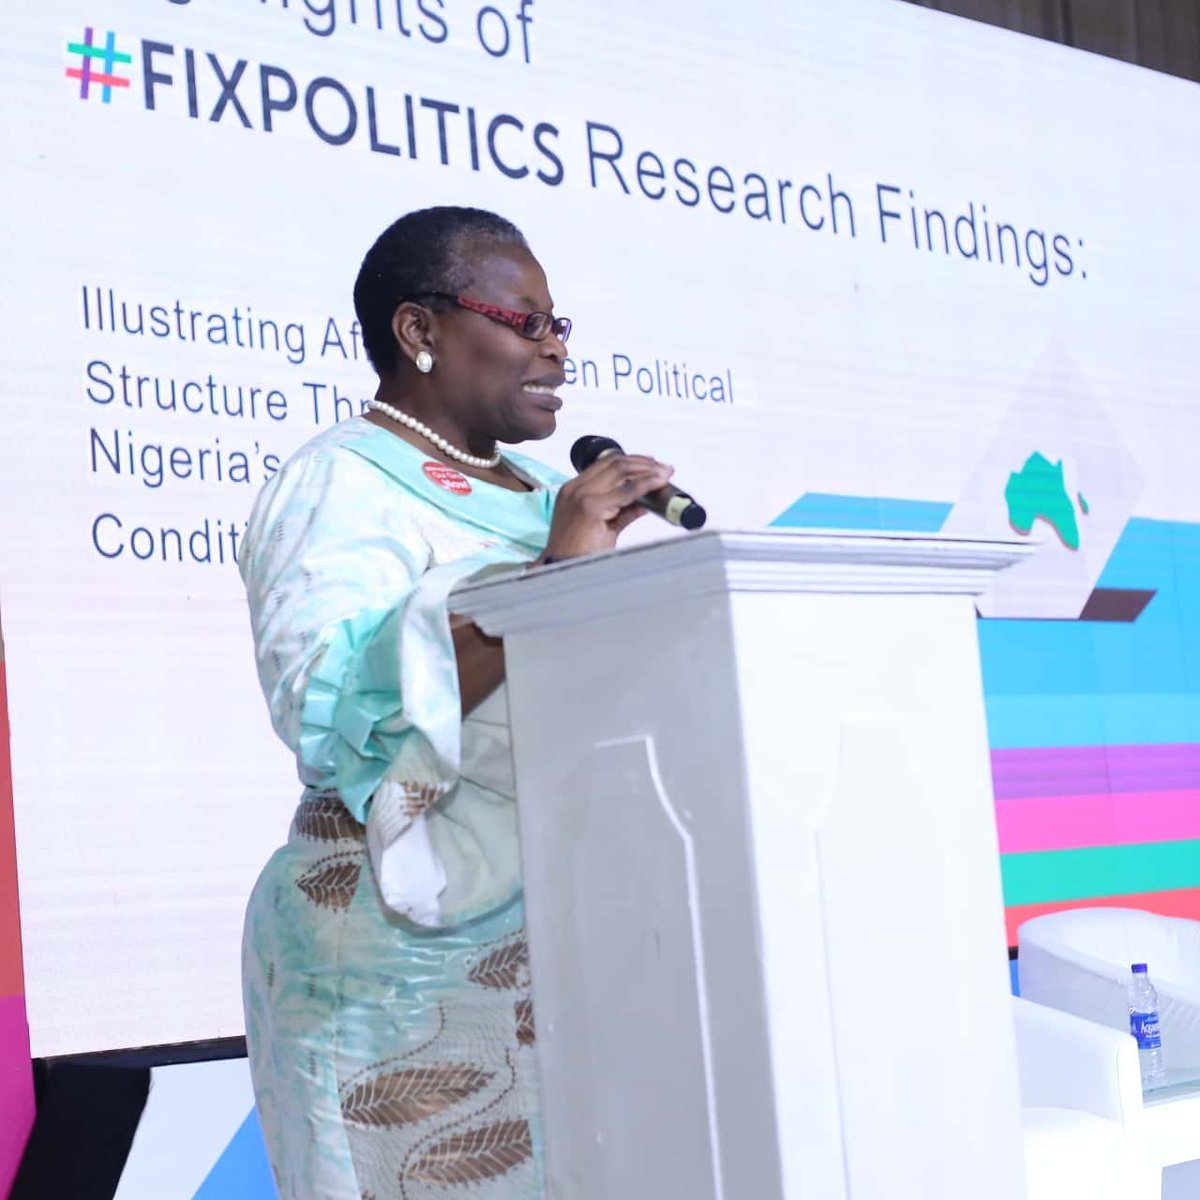 The moment Dr. @obyezeks brought down the house with her powerful presentation of a five-month long #FixPolitics research. https://t.co/2zC5rhZFdJ